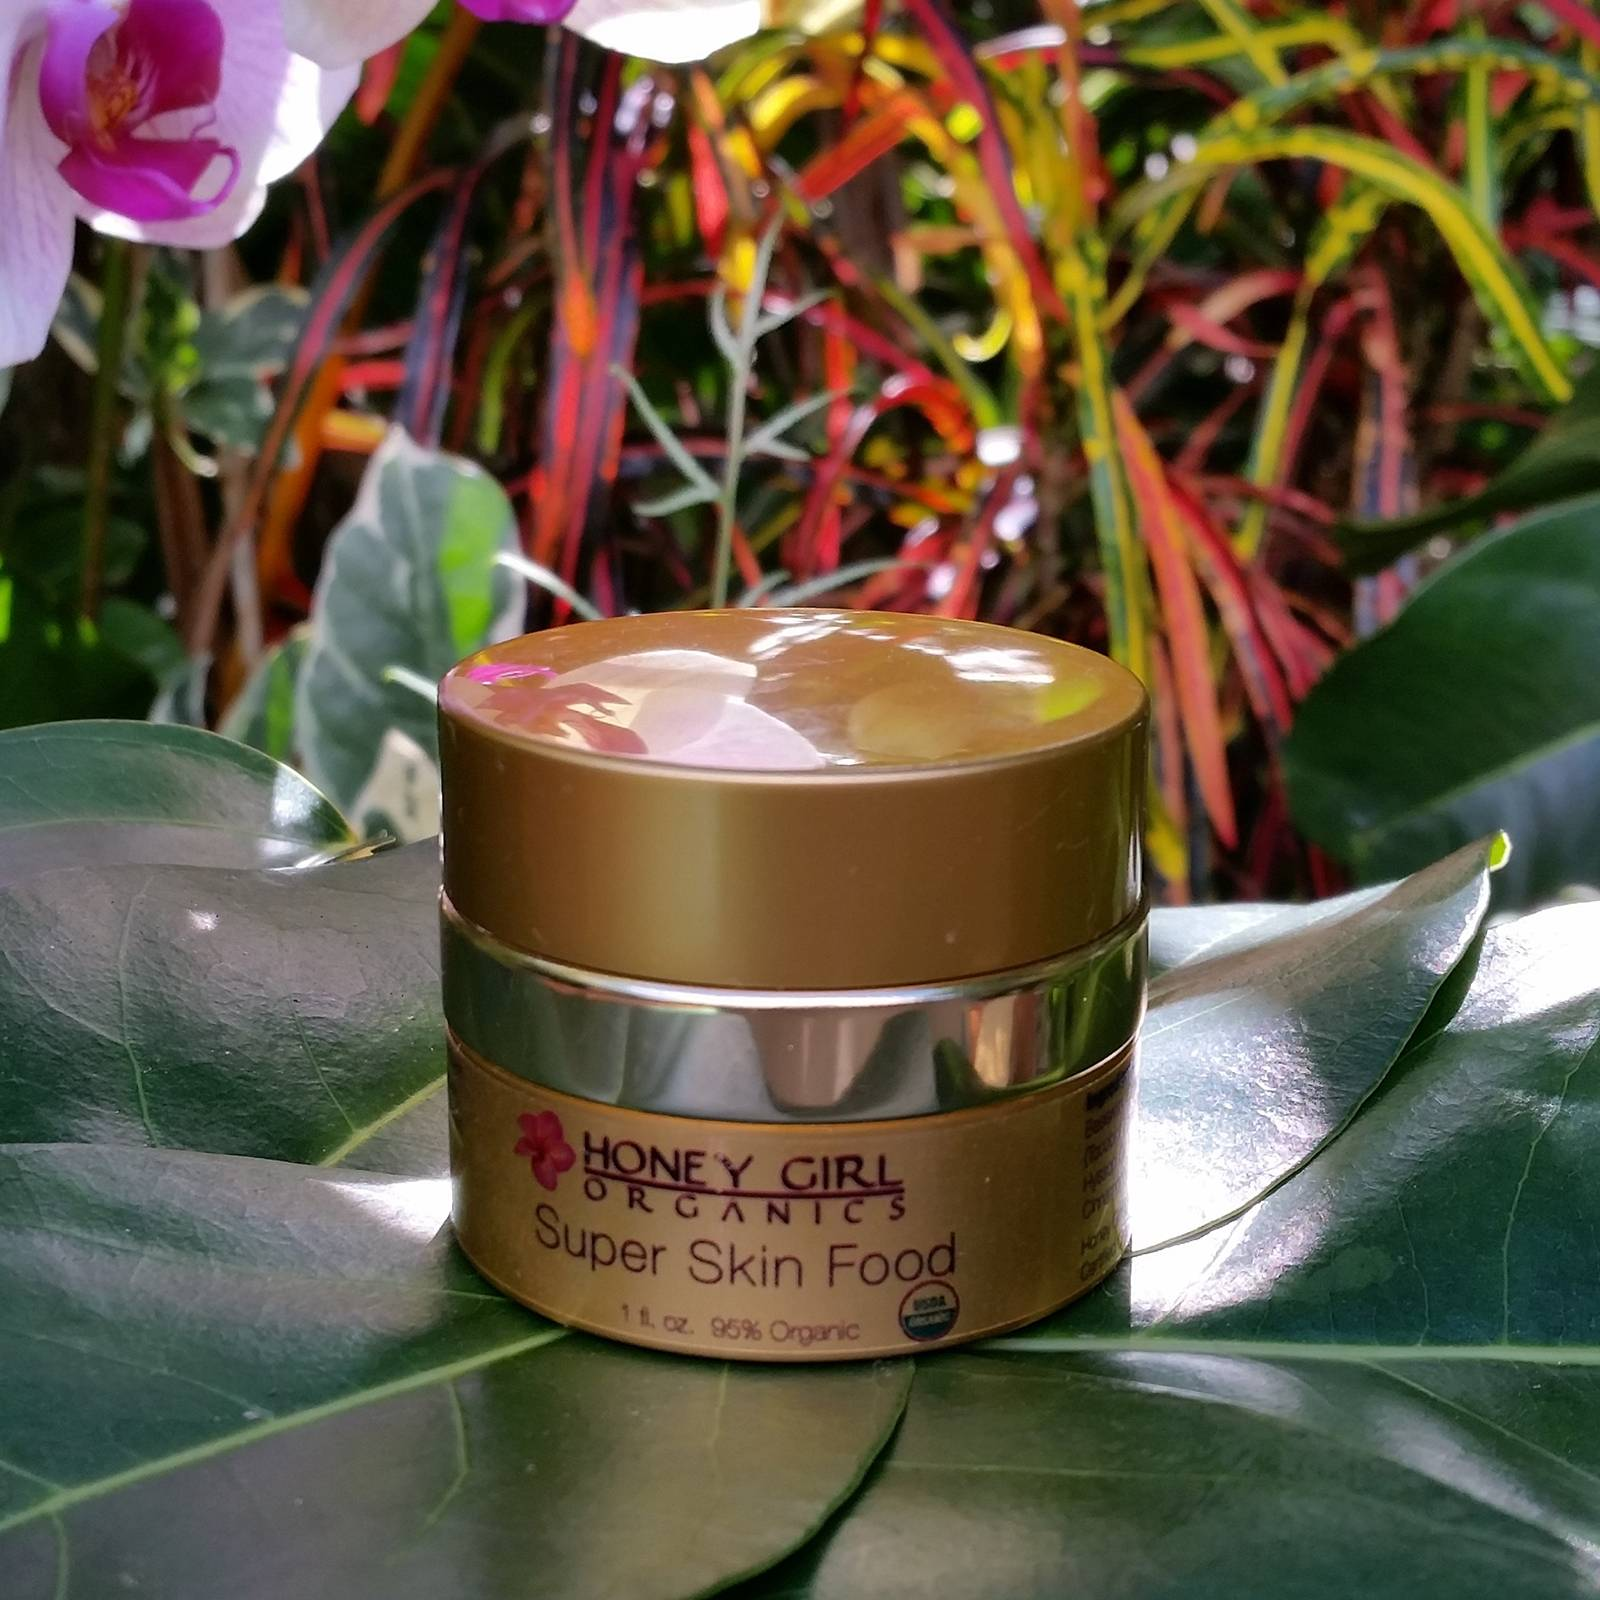 Honey Girl Organics Super Skin Food - $32.49 - This Non-GMO and gluten-Free, nourishing cream is food for the skin. The rich formula repairs distressed and problem skin with royal jelly and Vitamin E to deeply penetrate, heal and regenerate.(Photo: Courtesy of www.honeygirlorganics.com)